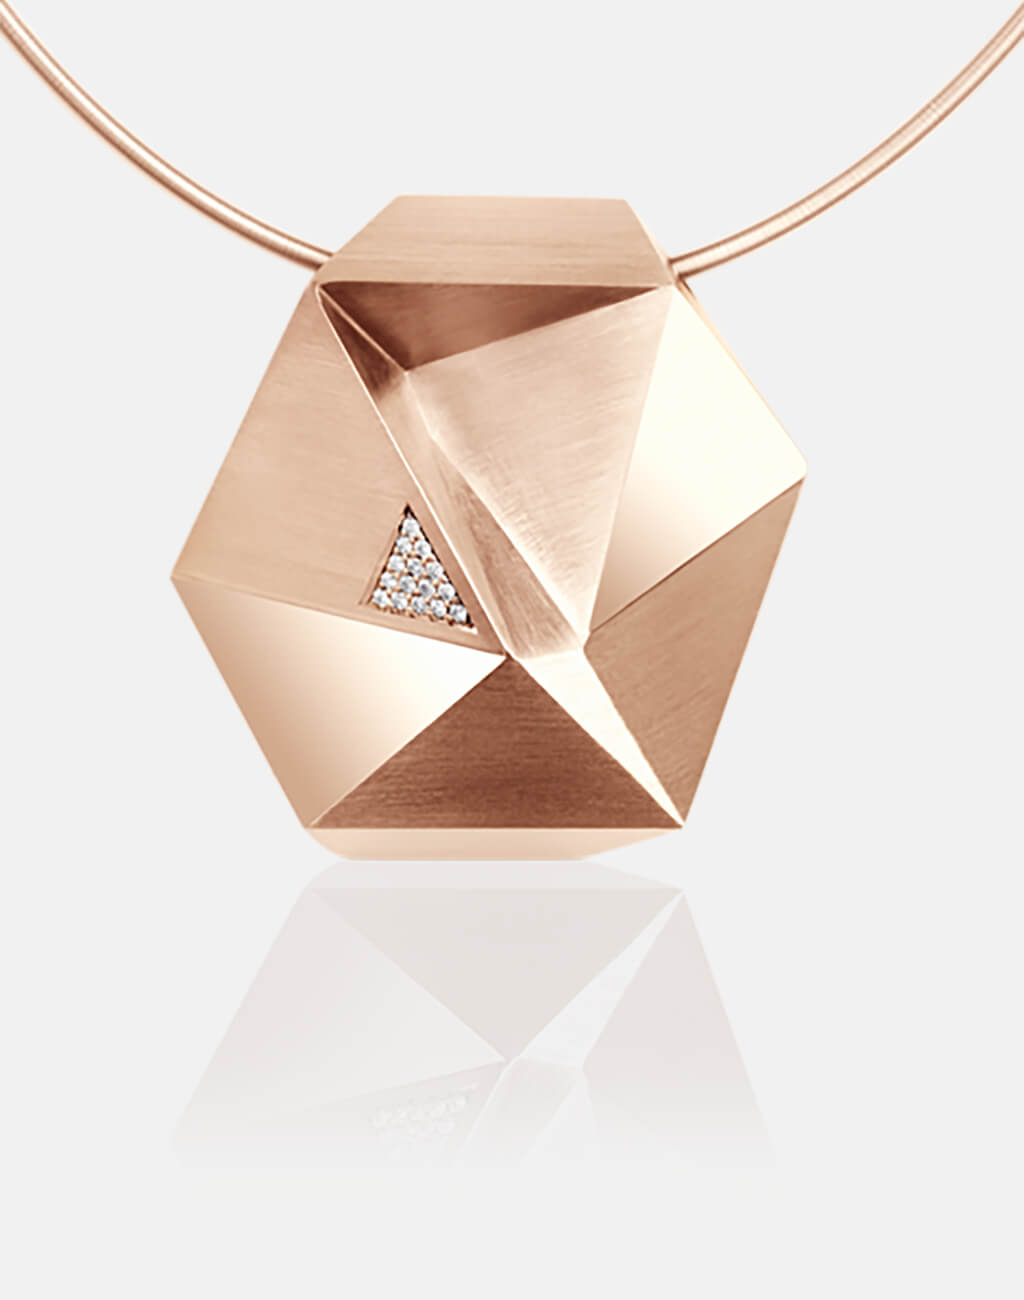 Tectone | Collier, Kettenanhänger, Kette 750/- Rosegold, Brillanten, Diamanten | necklace, pendant 18kt rose gold, diamonds | SYNO-Schmuck.com